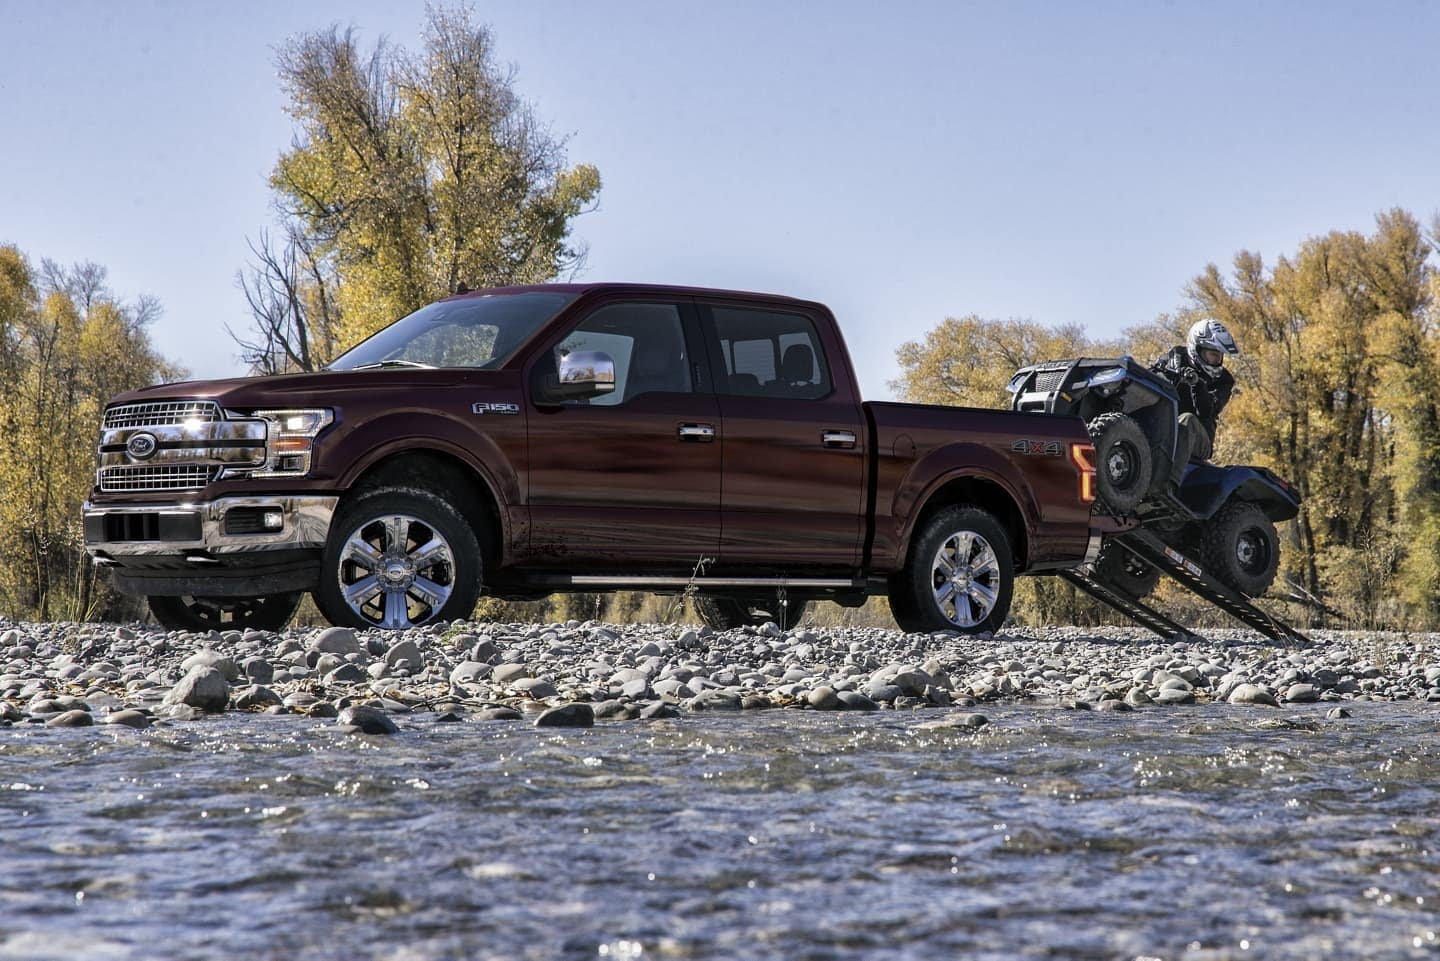 2020 Ford F-150 towing an RTV